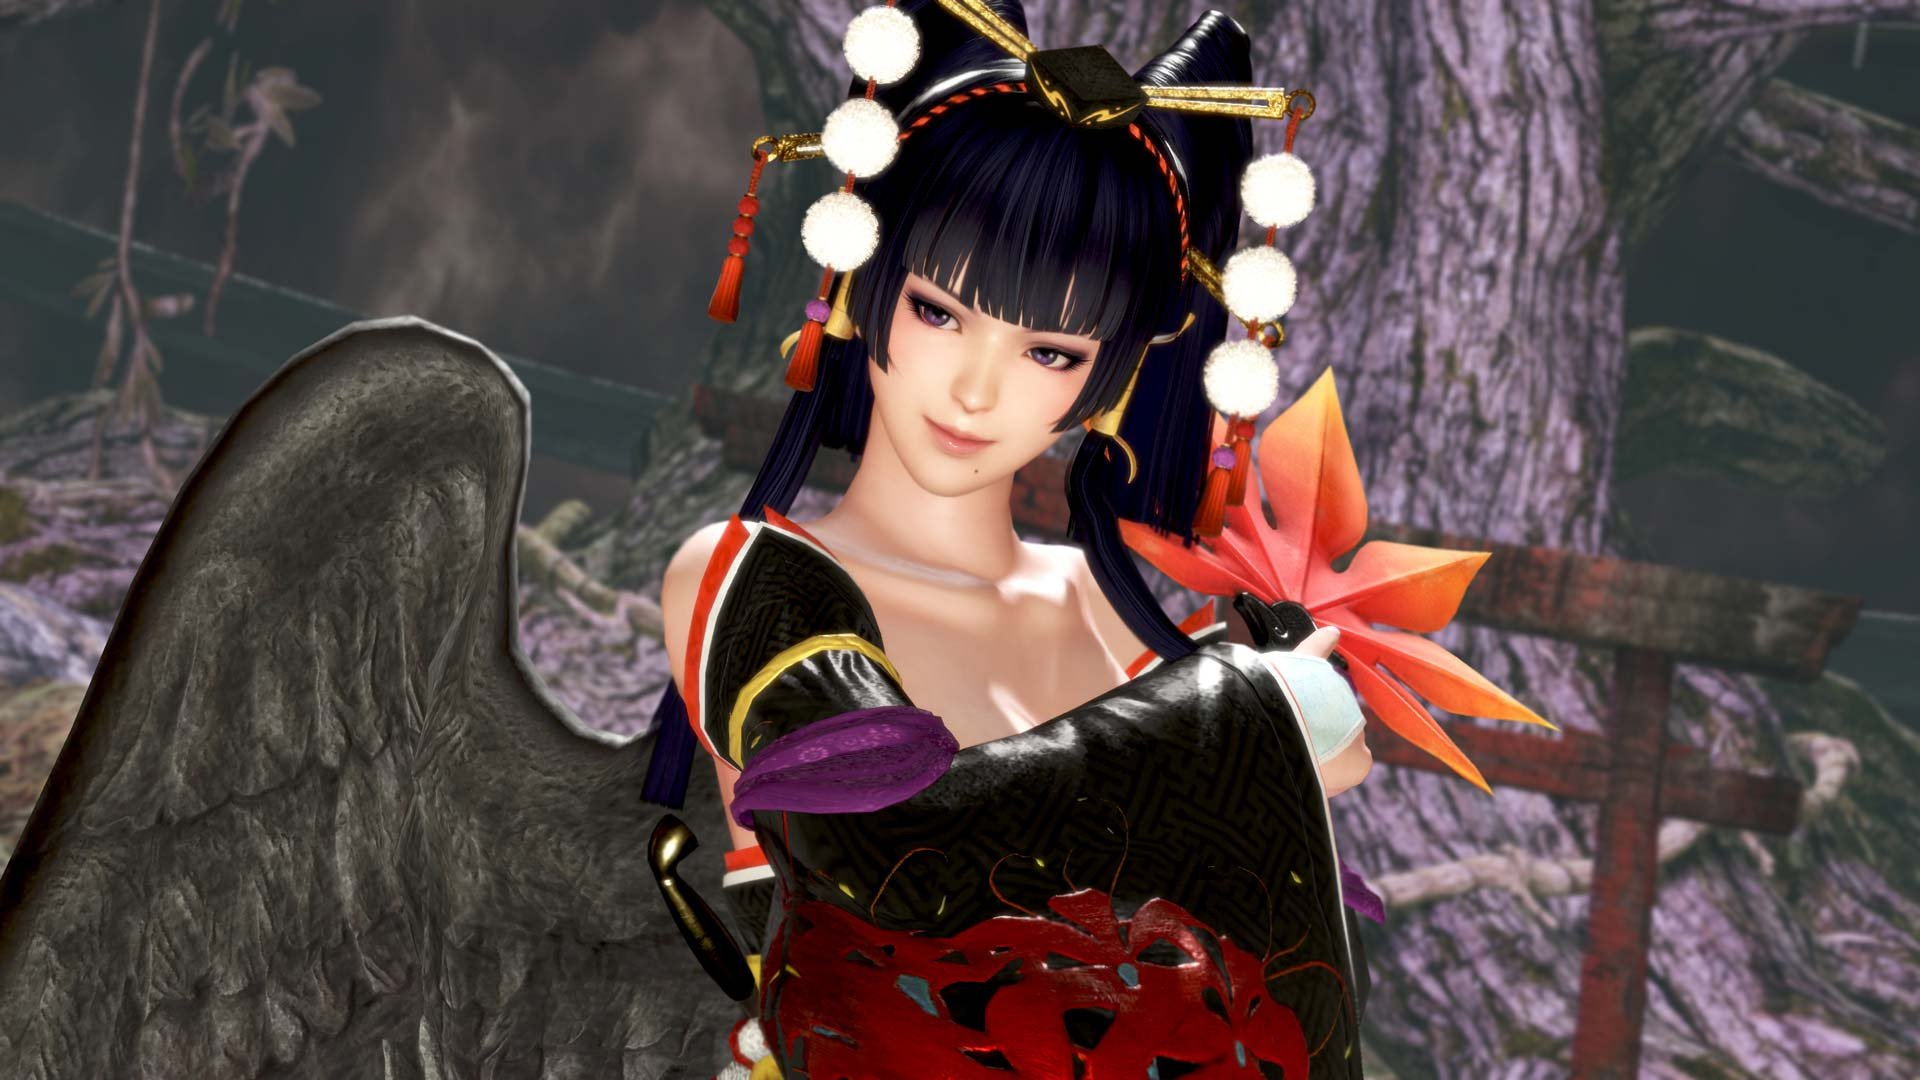 Japanese Dead or Alive 6 Stream Axed After Things Got a Bit